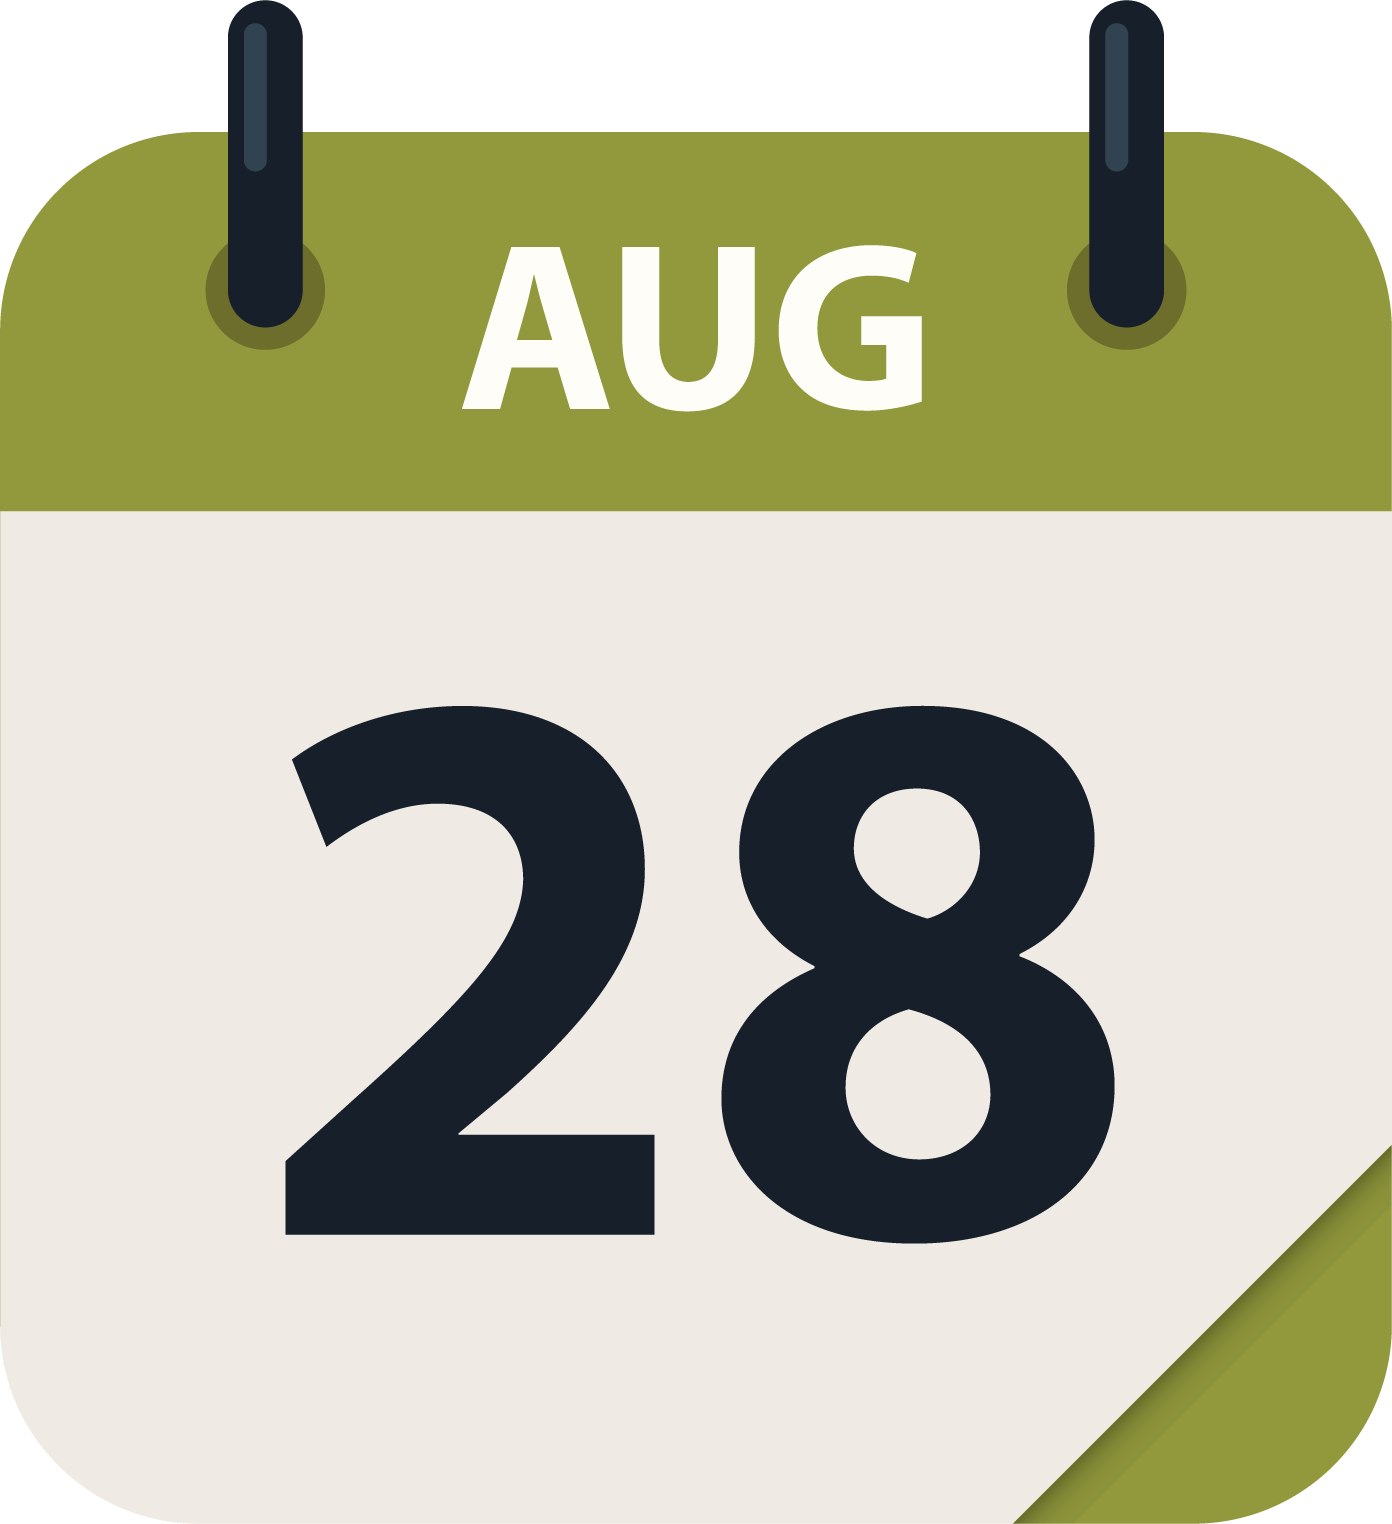 Aug 28 cal icon